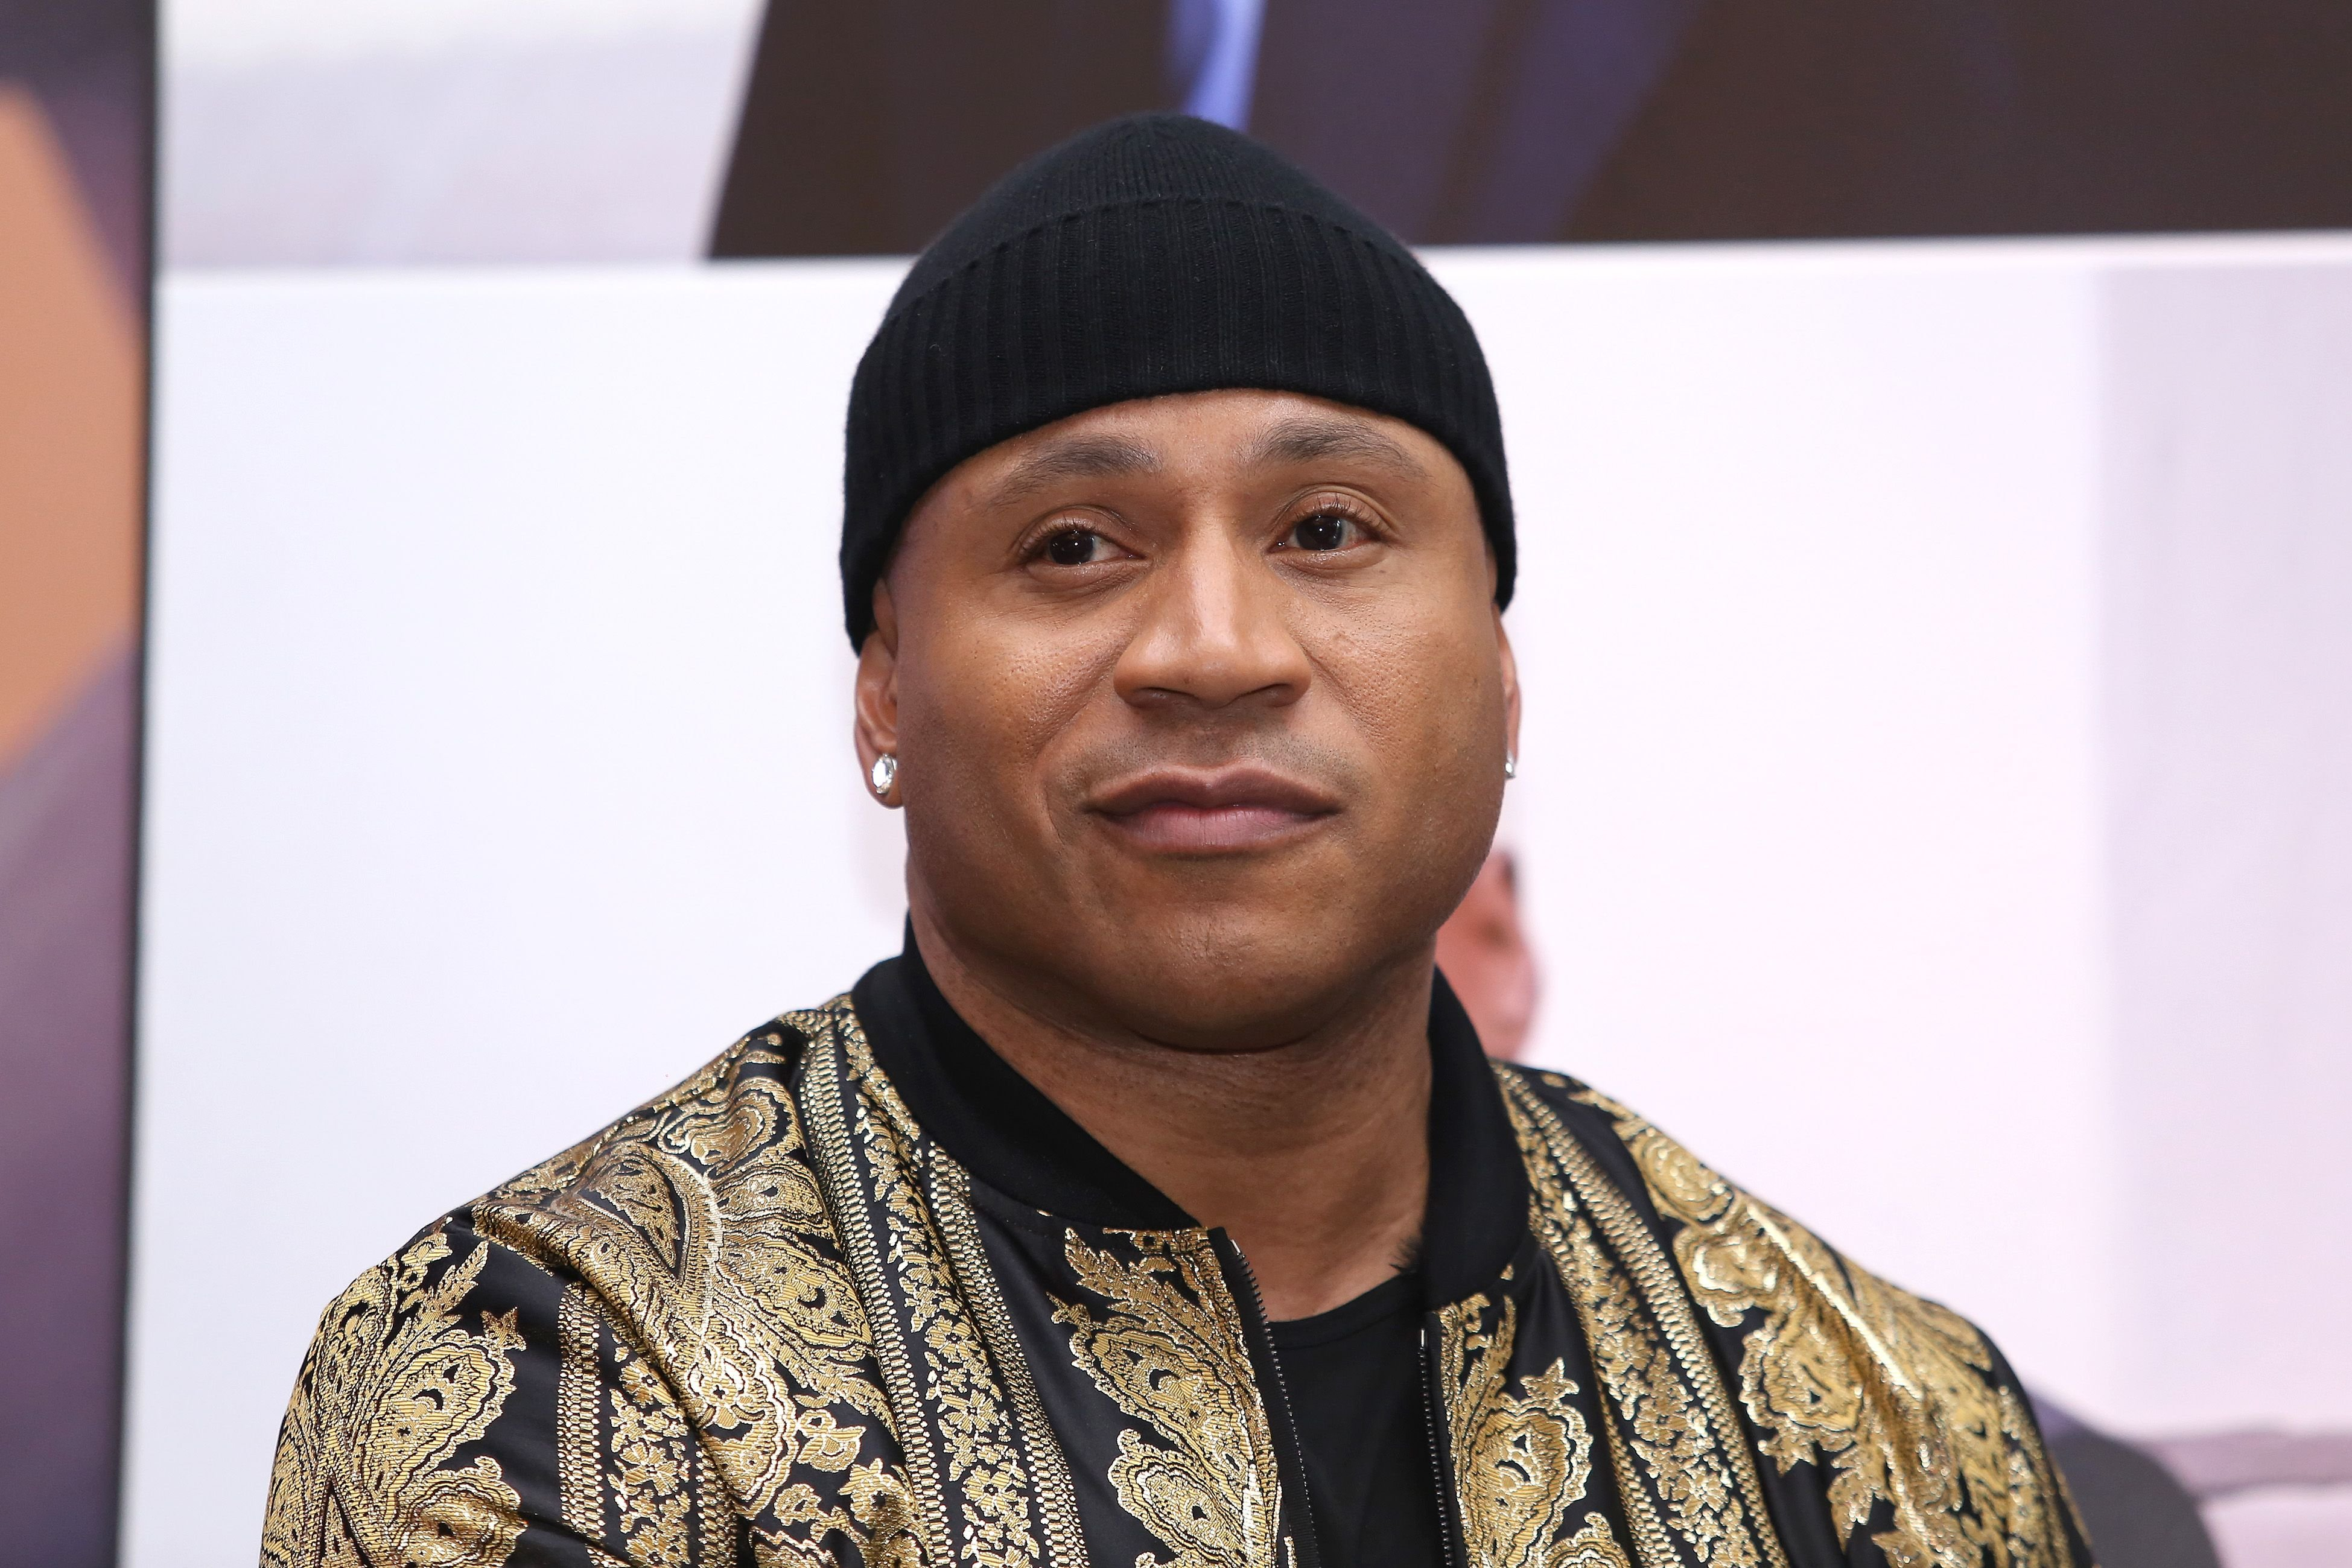 LL Cool J poses for photos during a press conference at Hotel St. Regis on June 5, 2019 in Mexico City, Mexico. | Photo: Getty Images